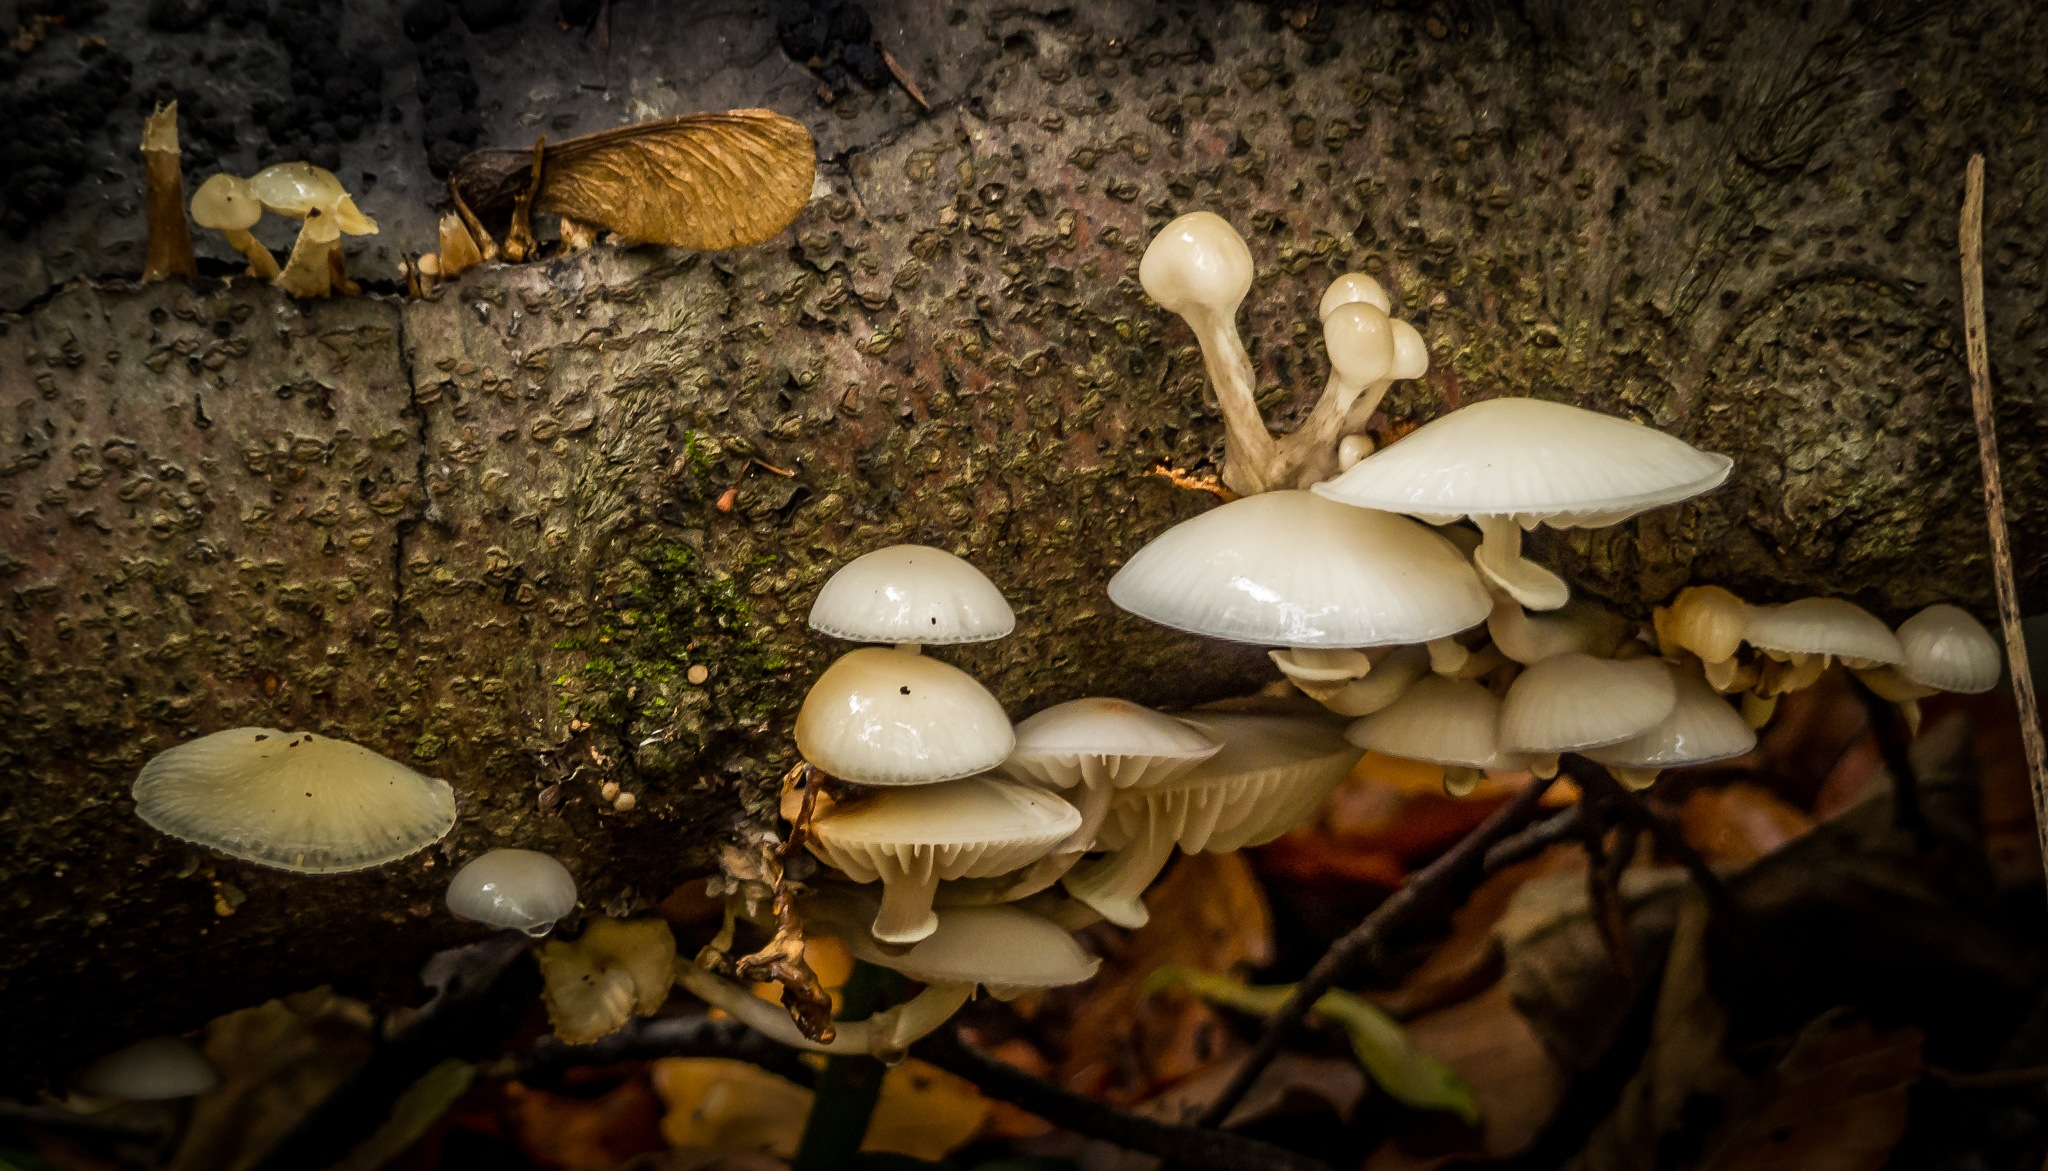 fungi 3 by andre.belg